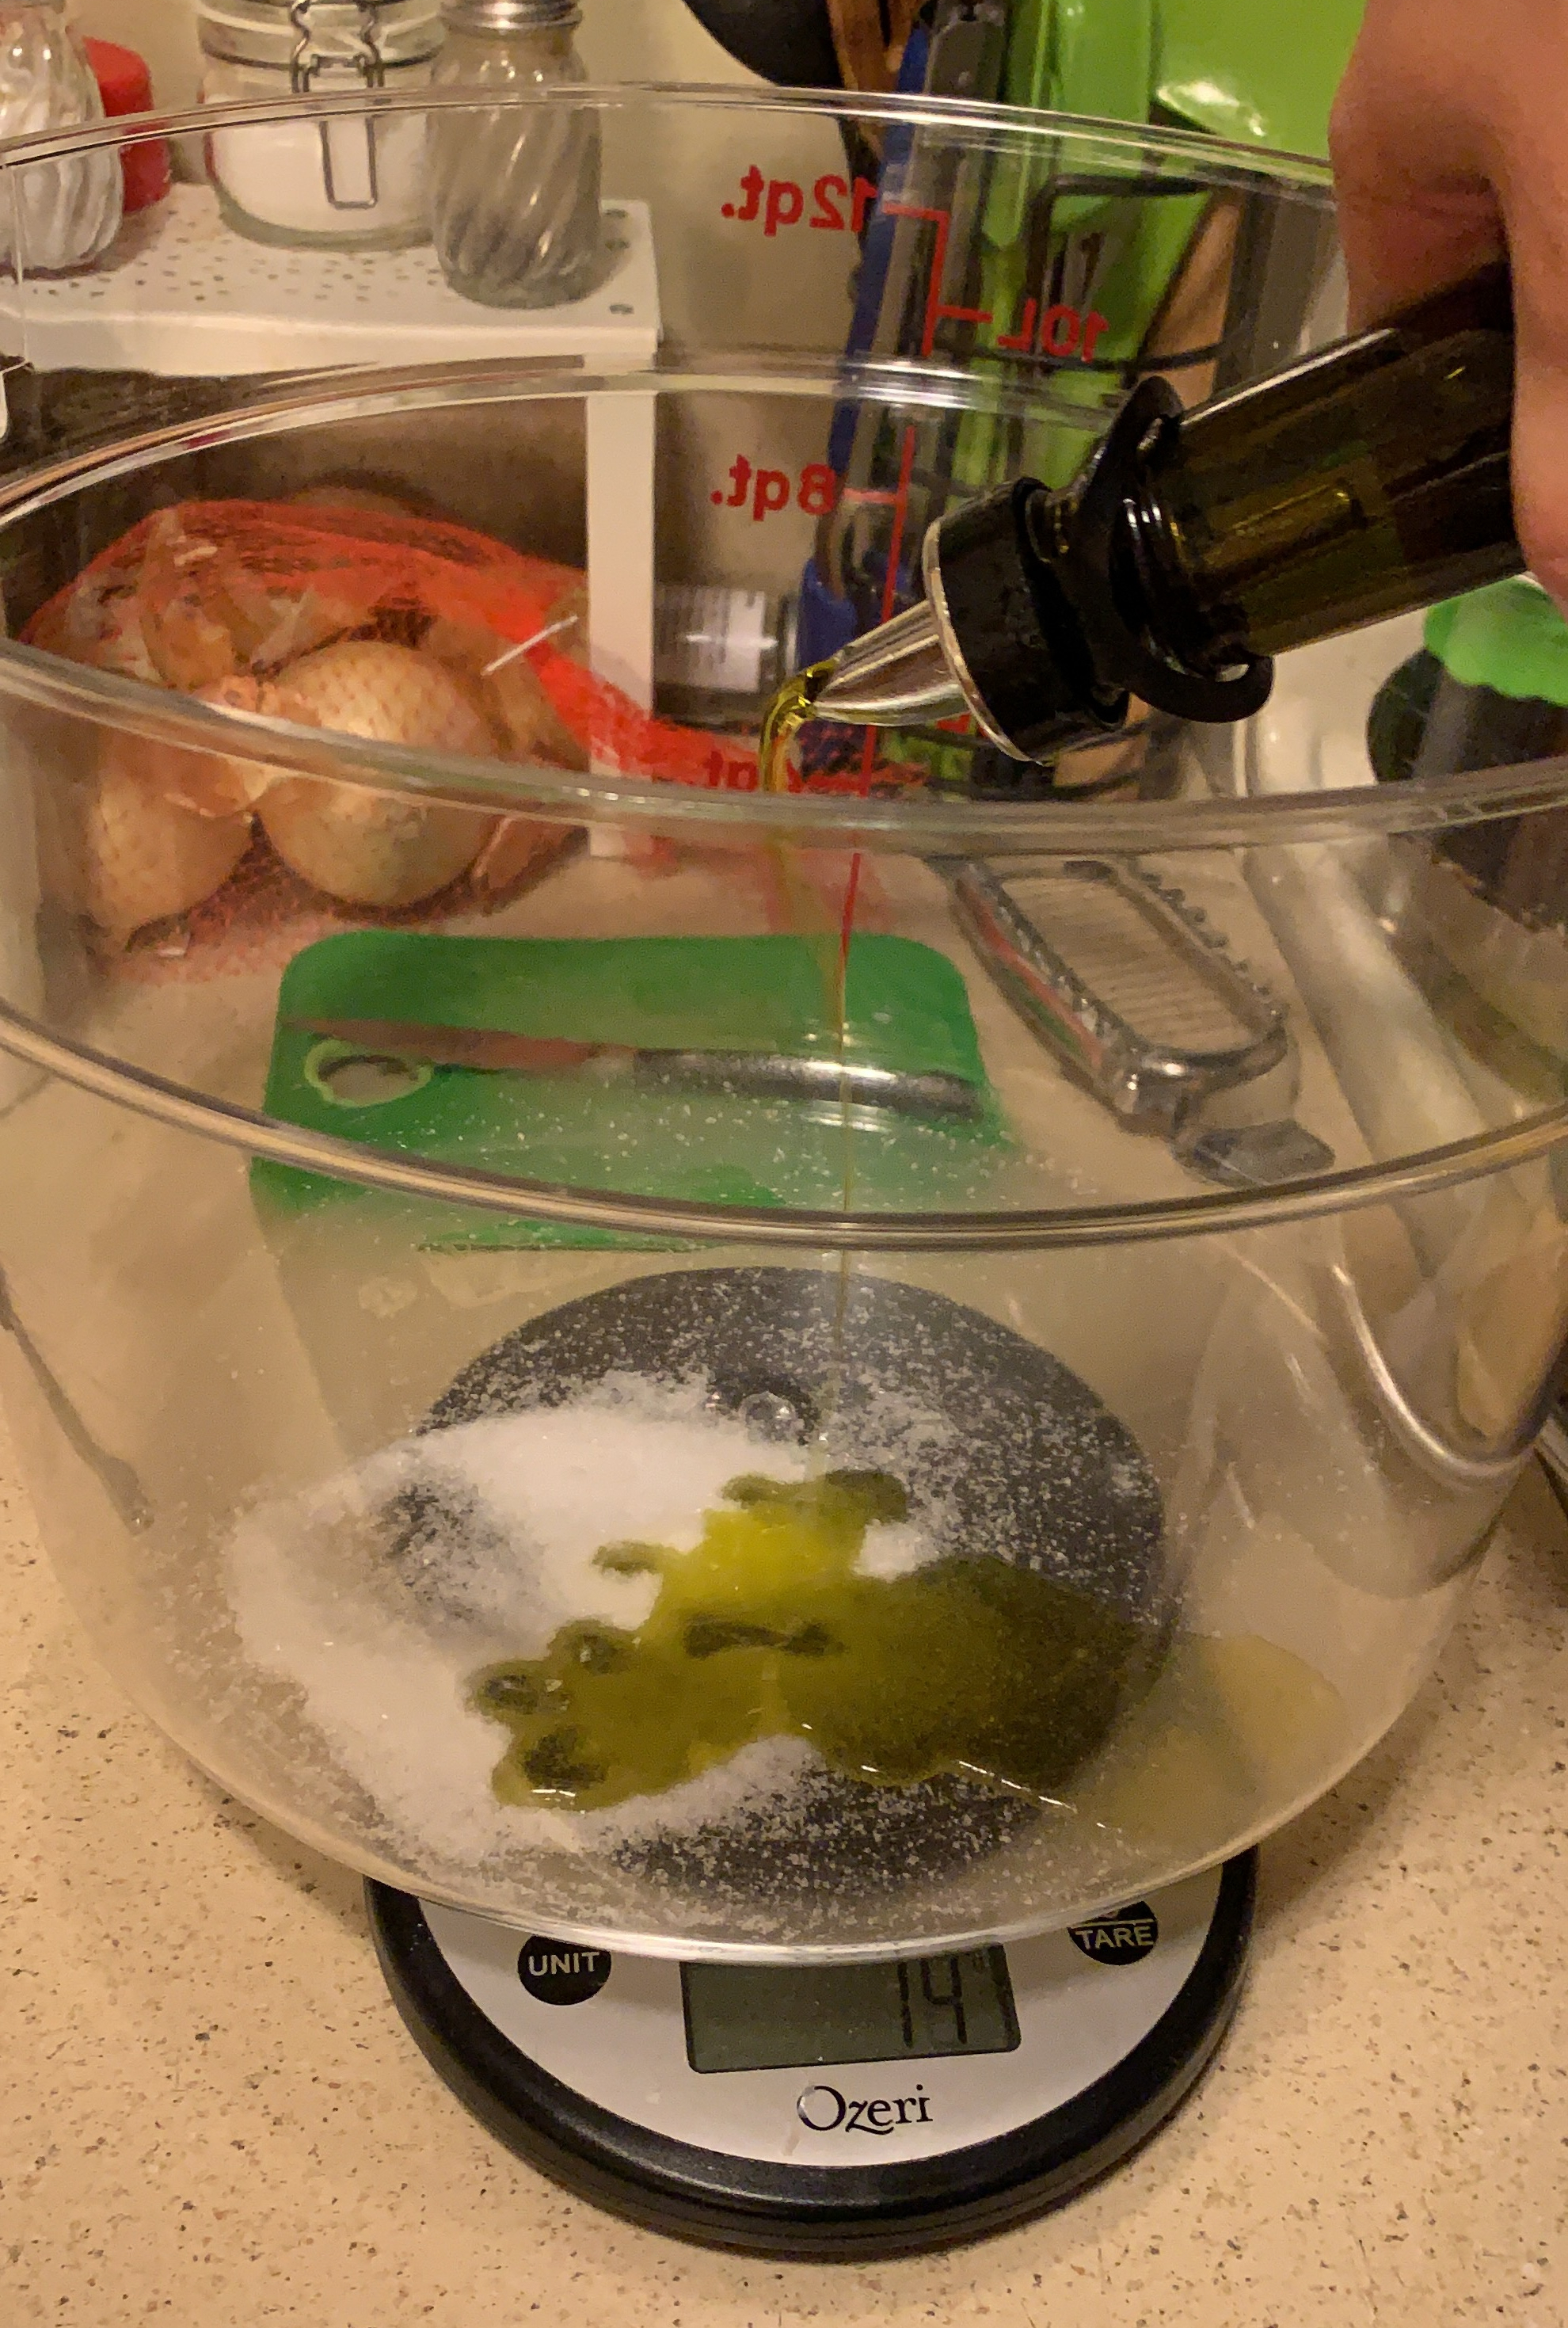 Olive oil pouring into a large plastic tub with salt on kitchen scale.